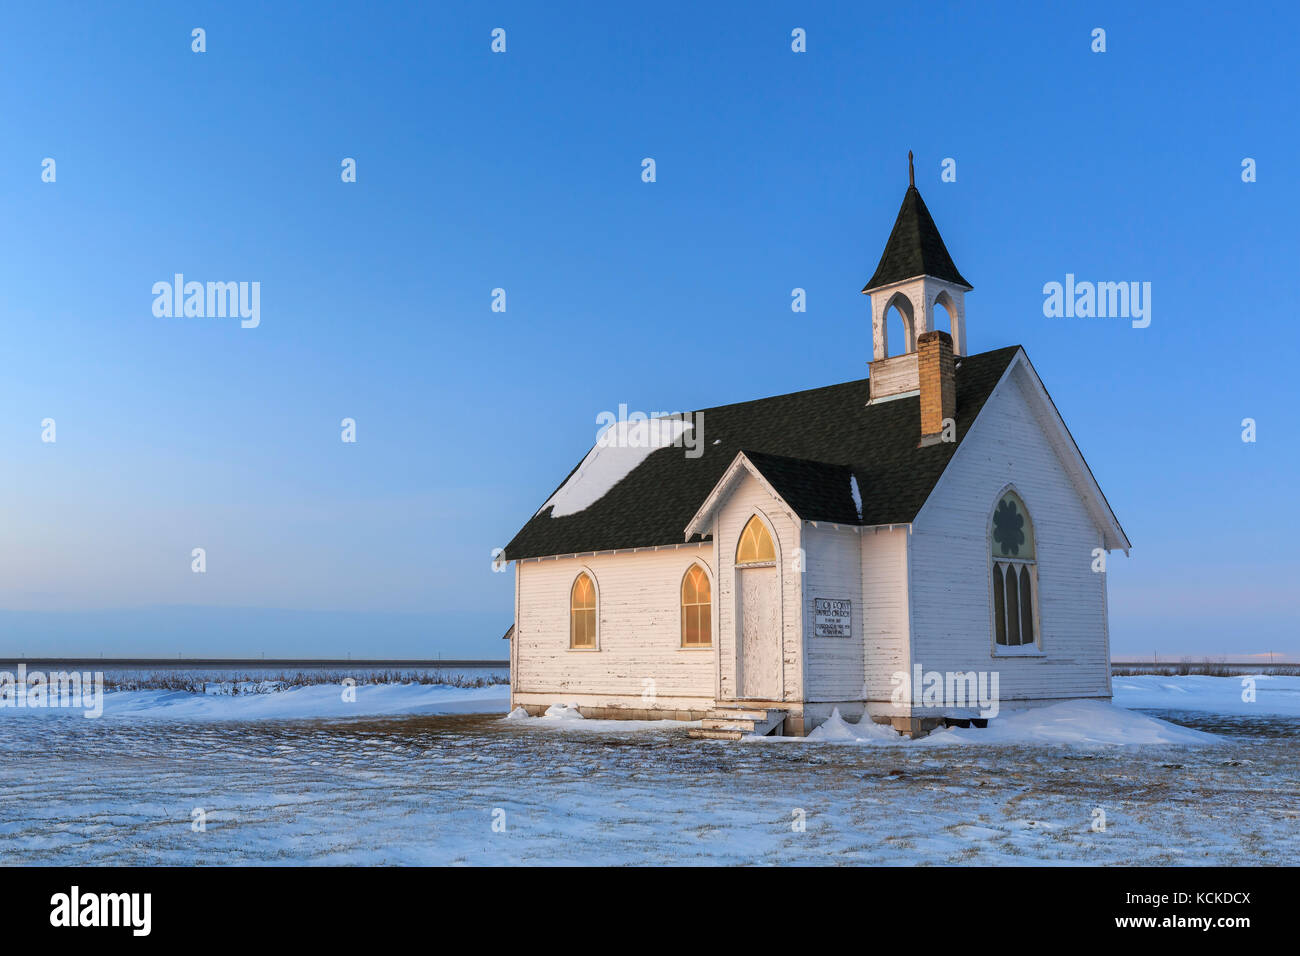 Union Point United Church, an abandoned church in the ghosttown Union Point, Manitoba, Canada. - Stock Image